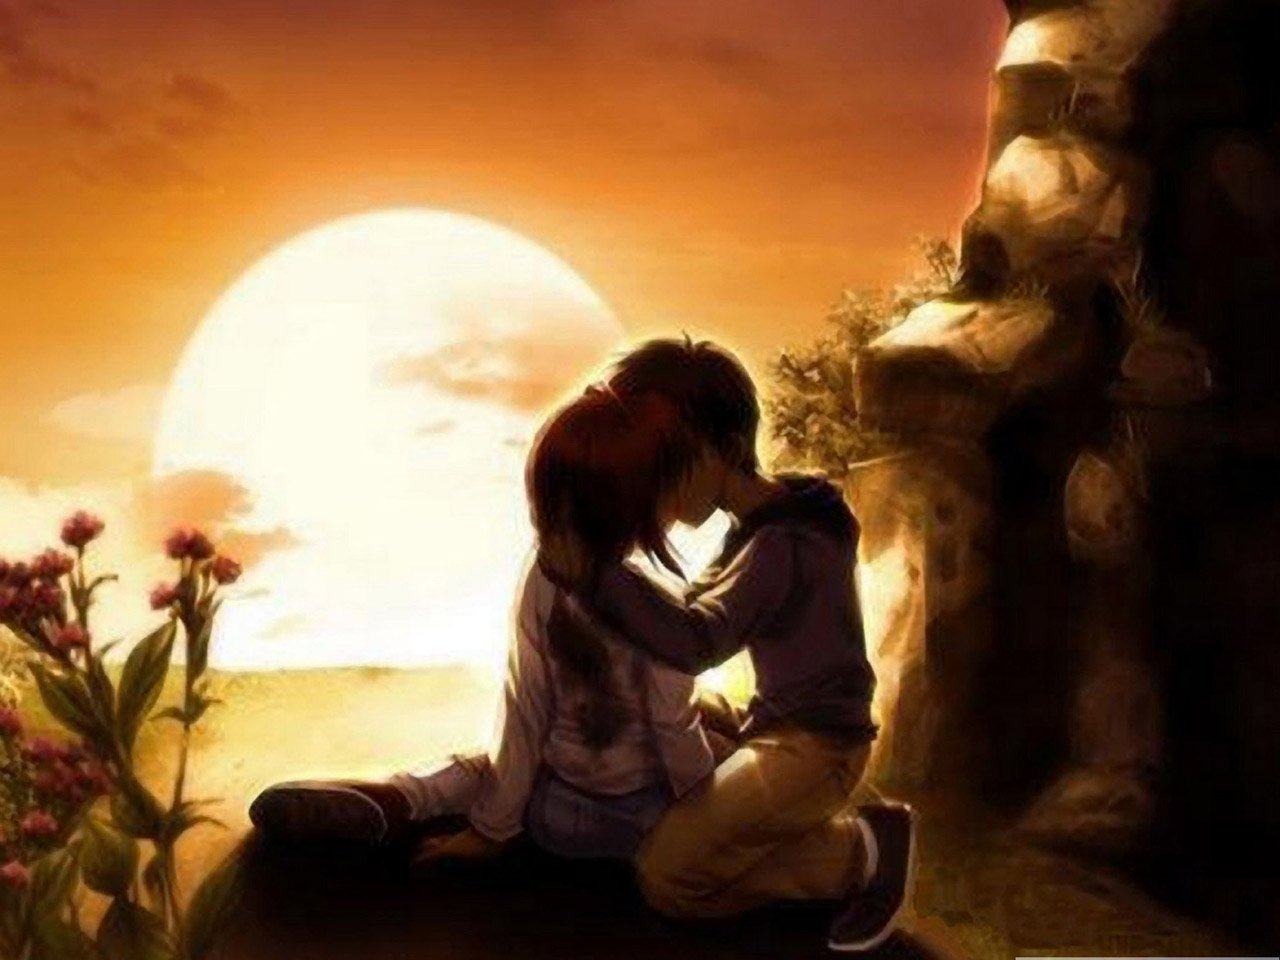 Anime Love Wallpaper then choose save image as and save this mobile 1280x960